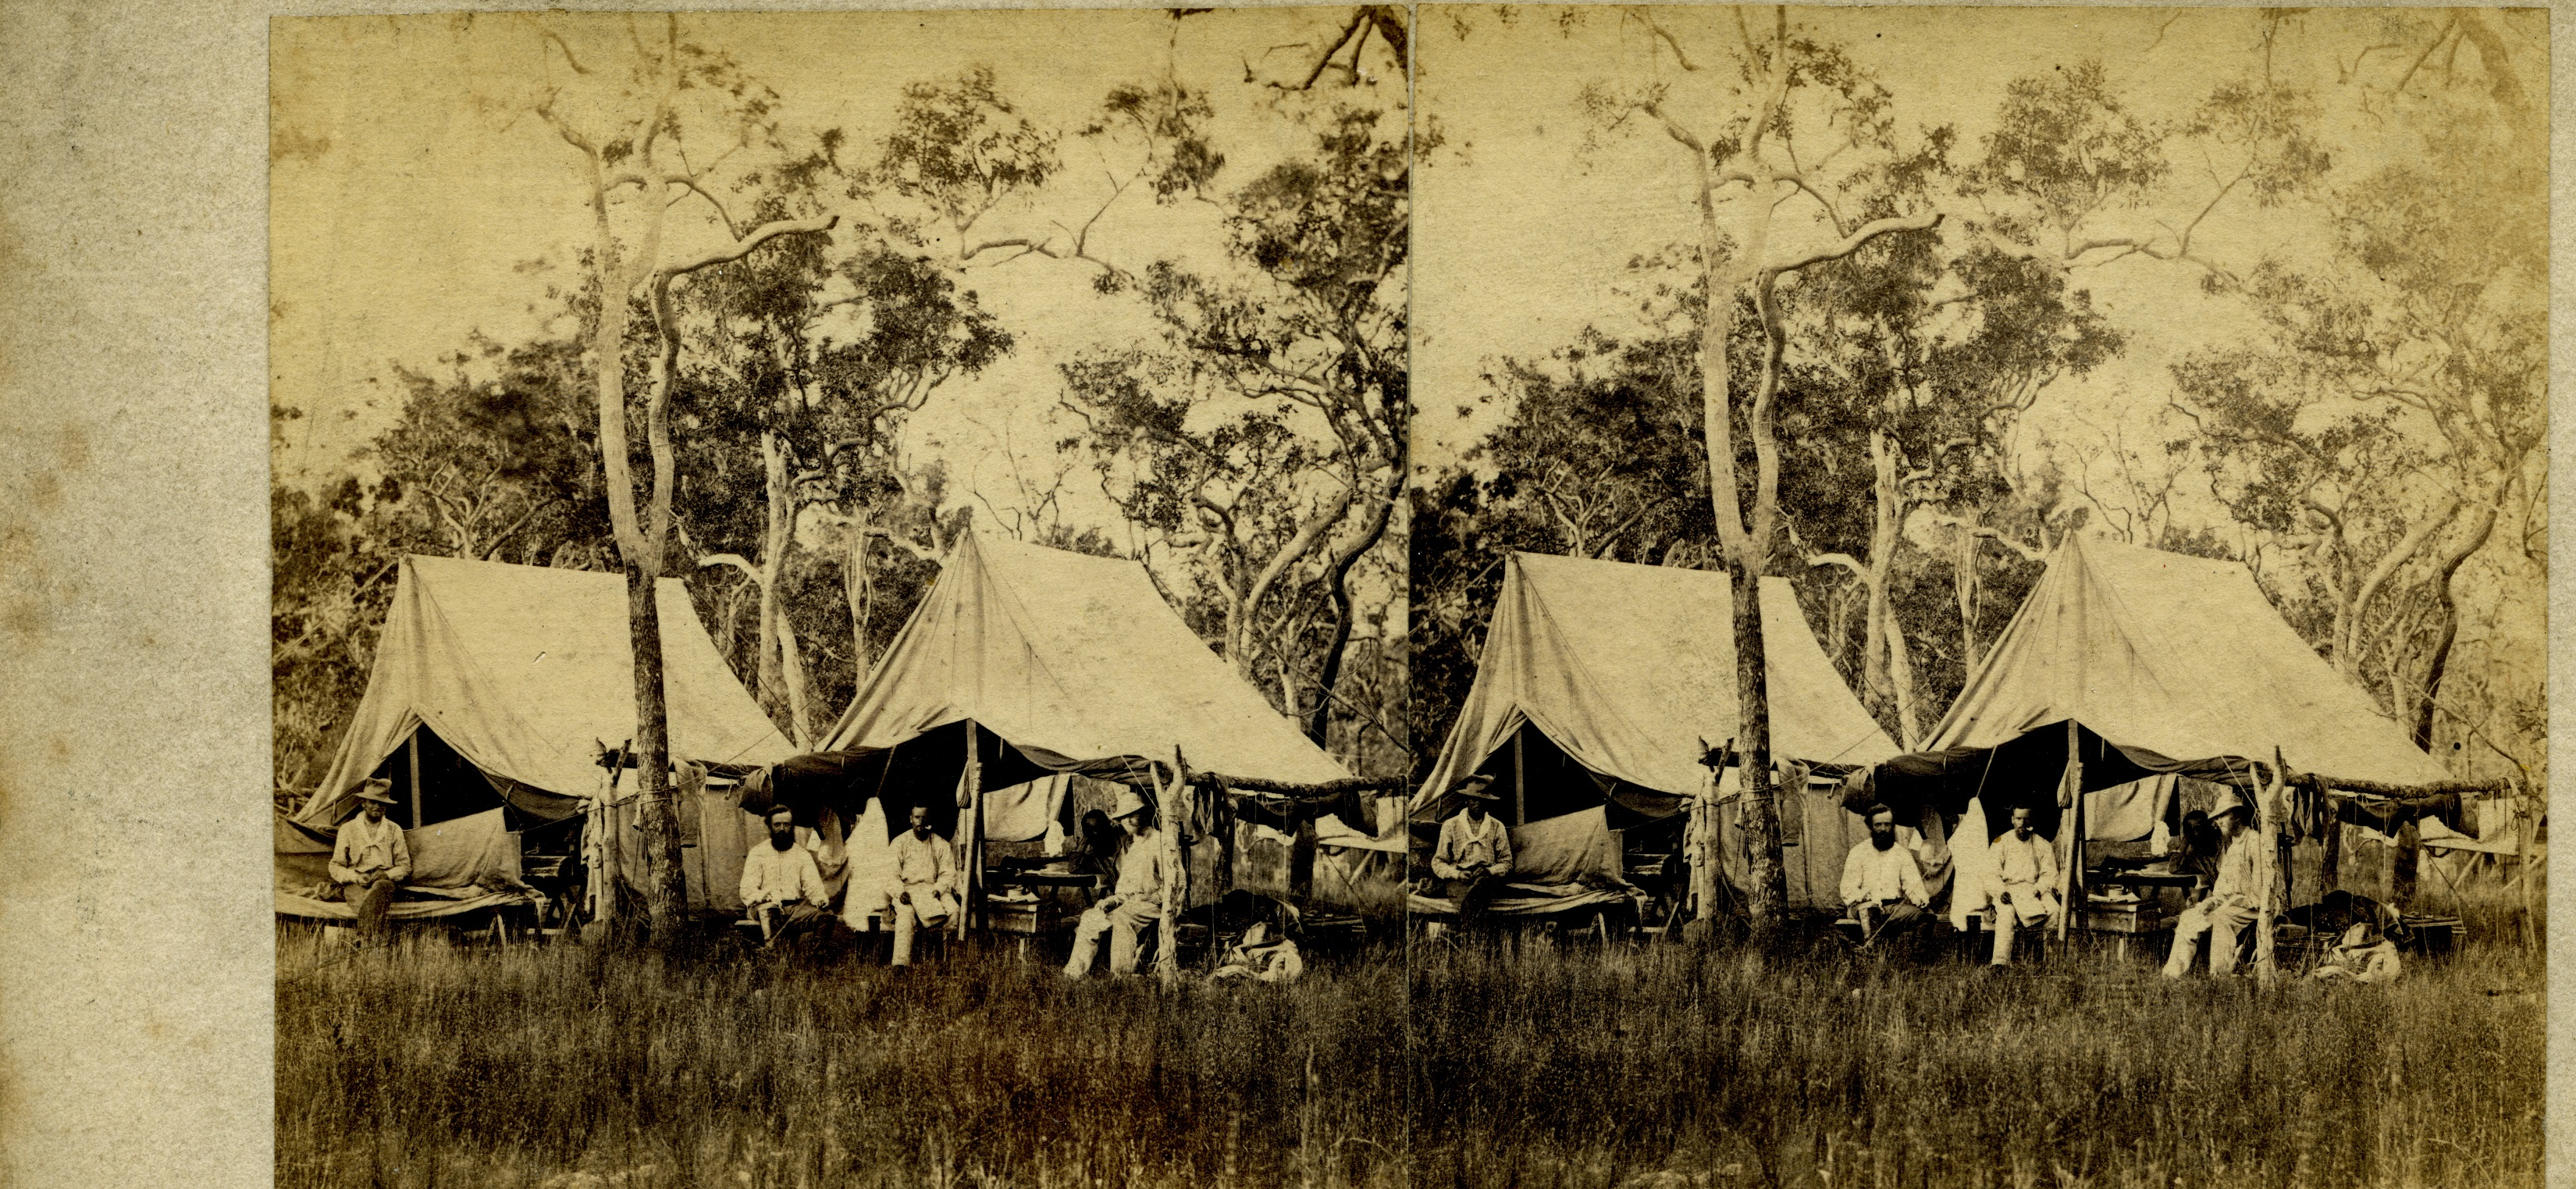 Stereoscopic image of Mr. McLachlan's camp at the three wells, 1869